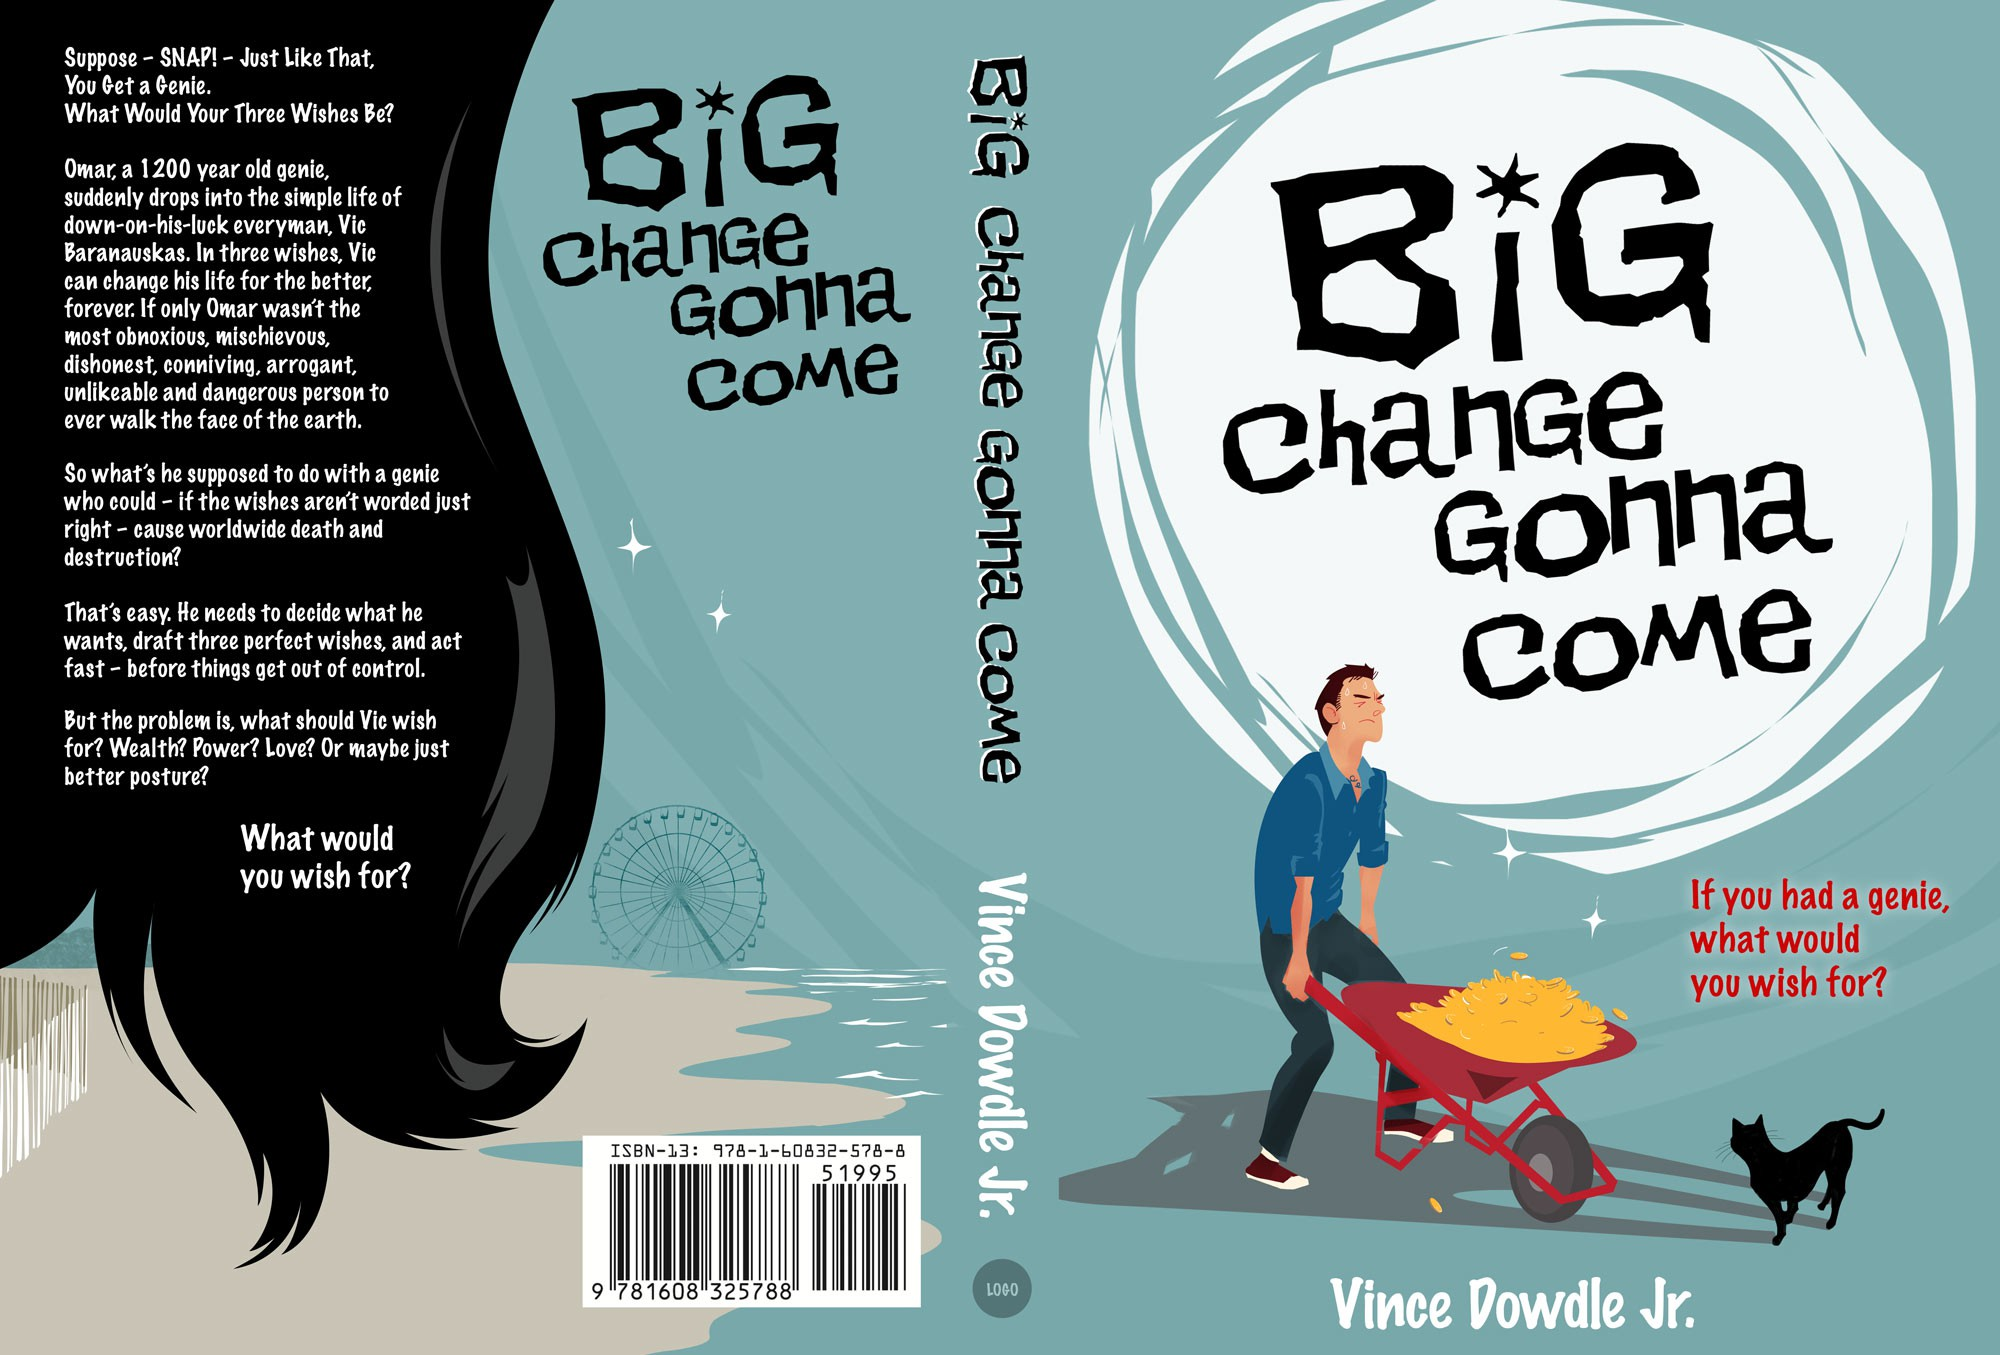 """Cover for first self-published novel, a comic fantasy titled """"Big Change Gonna Come""""."""